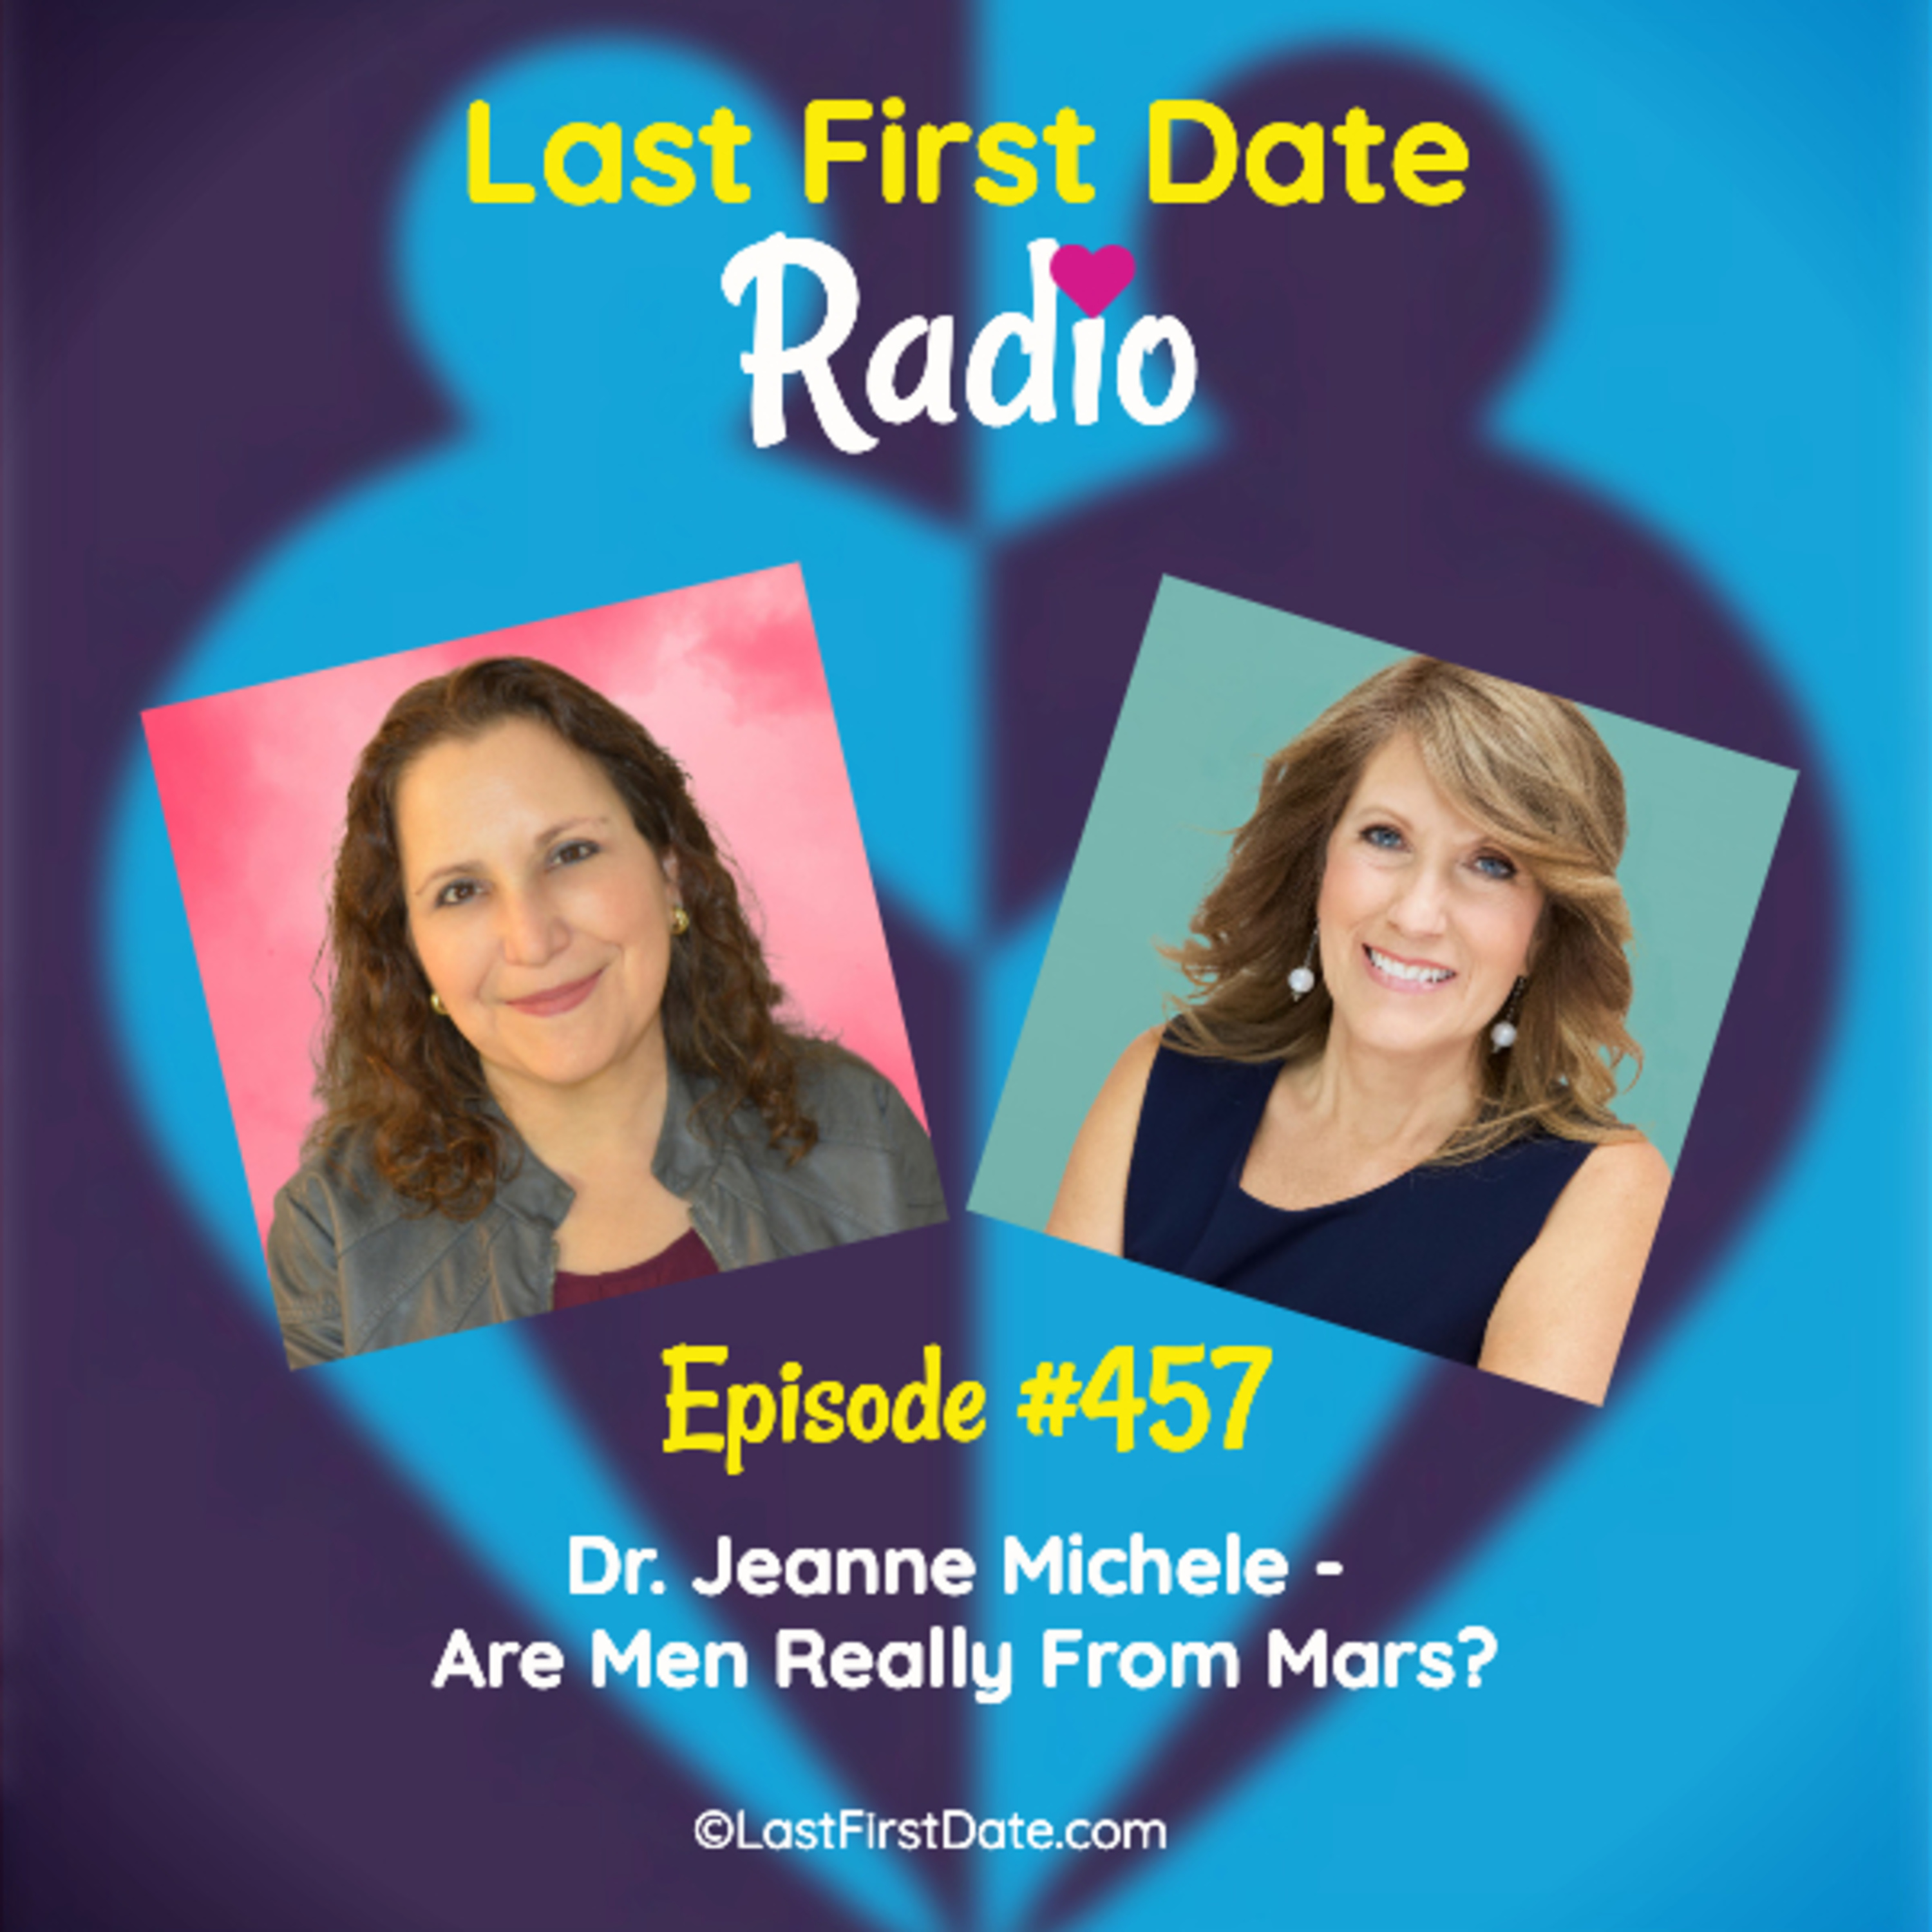 Last First Date Radio - EP 457: Dr. Jeanne Michele - Are Men Really From Mars?